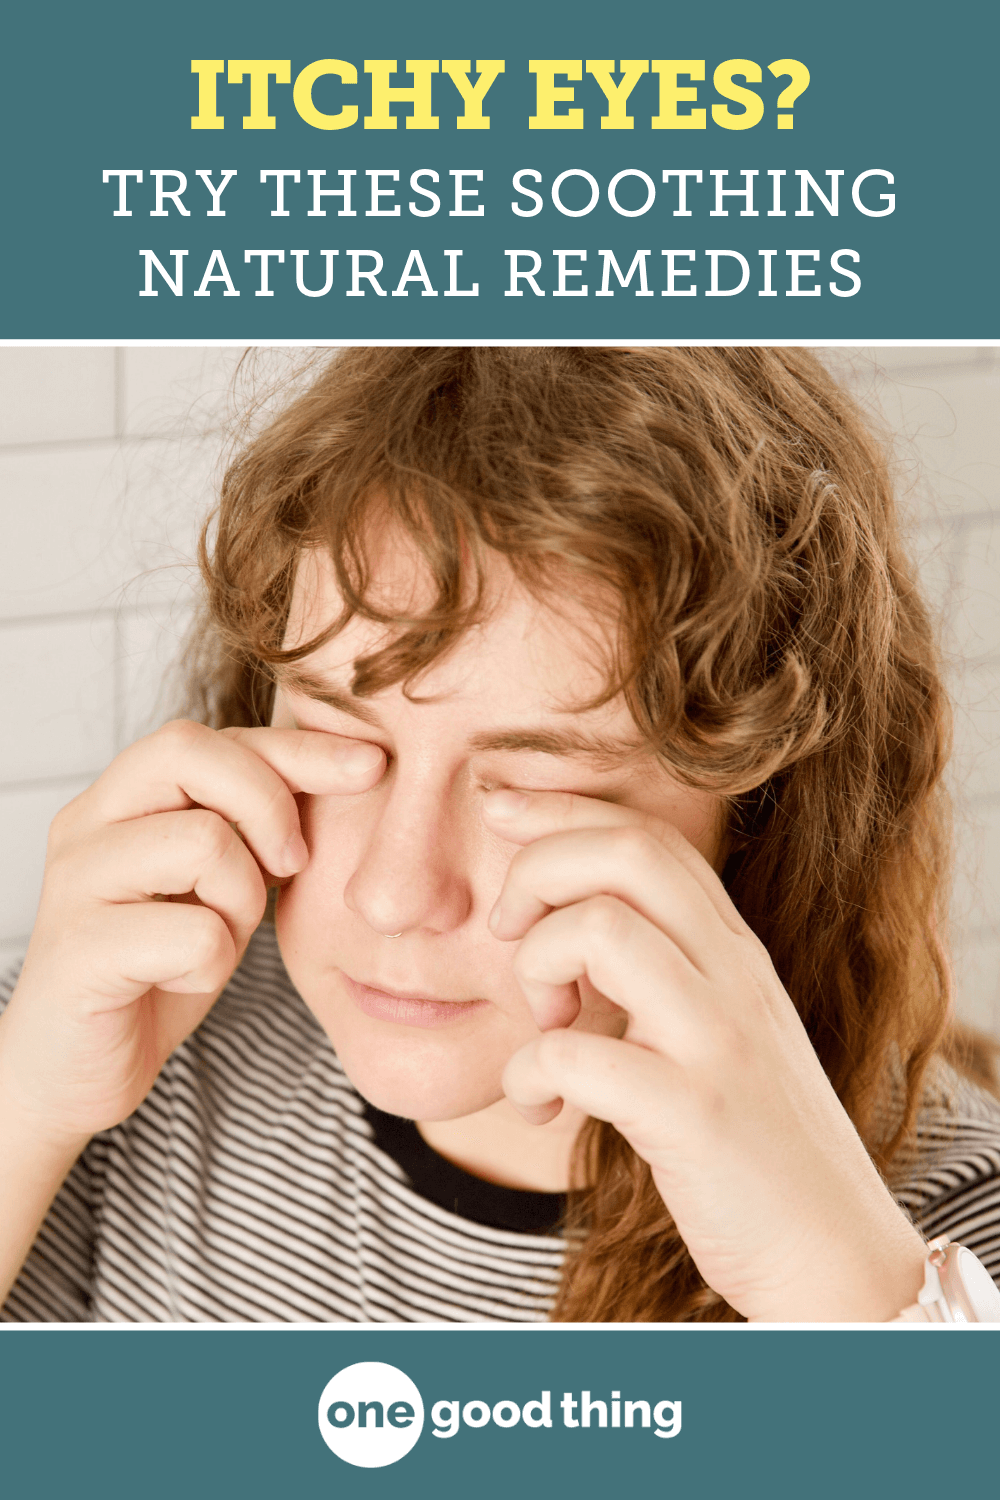 16 Effective Remedies That Will Soothe Itchy & Red Eyes